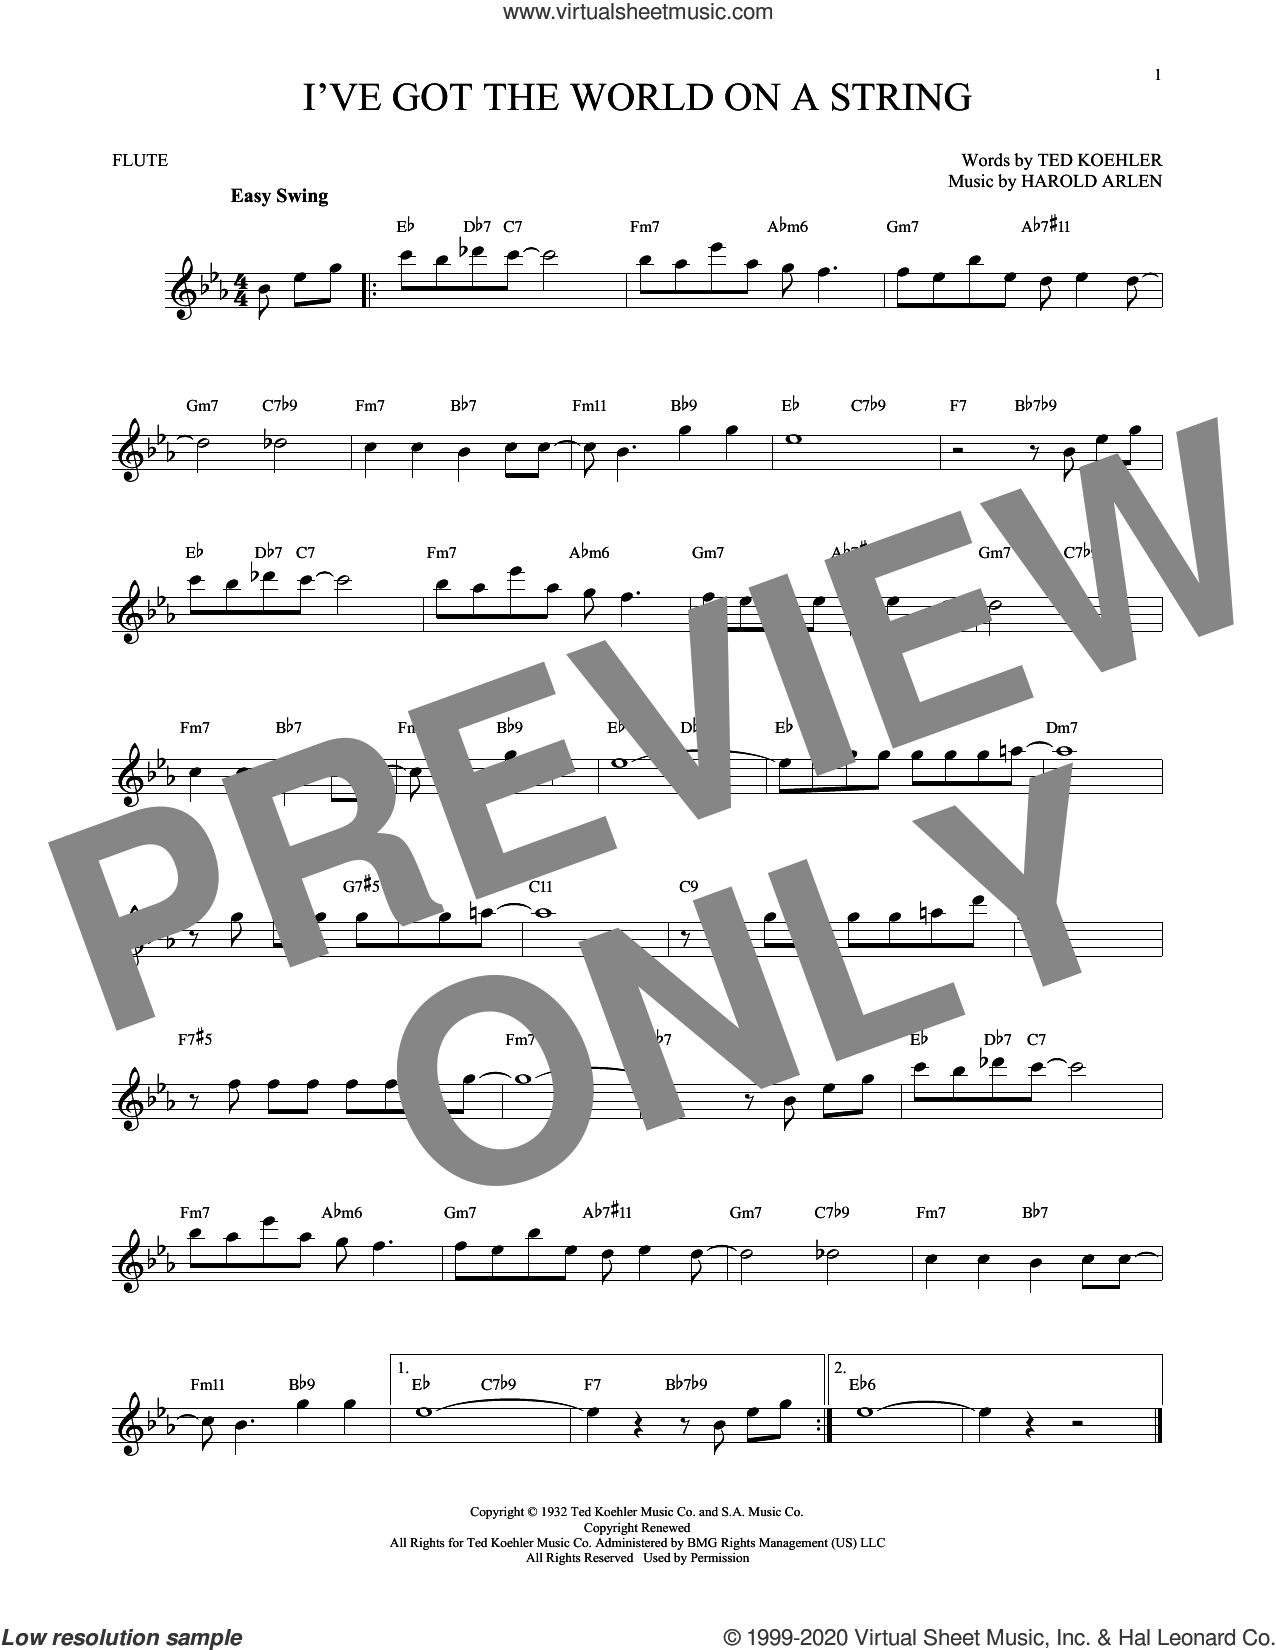 I've Got The World On A String sheet music for flute solo by Harold Arlen, Dick Hyman and Ted Koehler, intermediate skill level